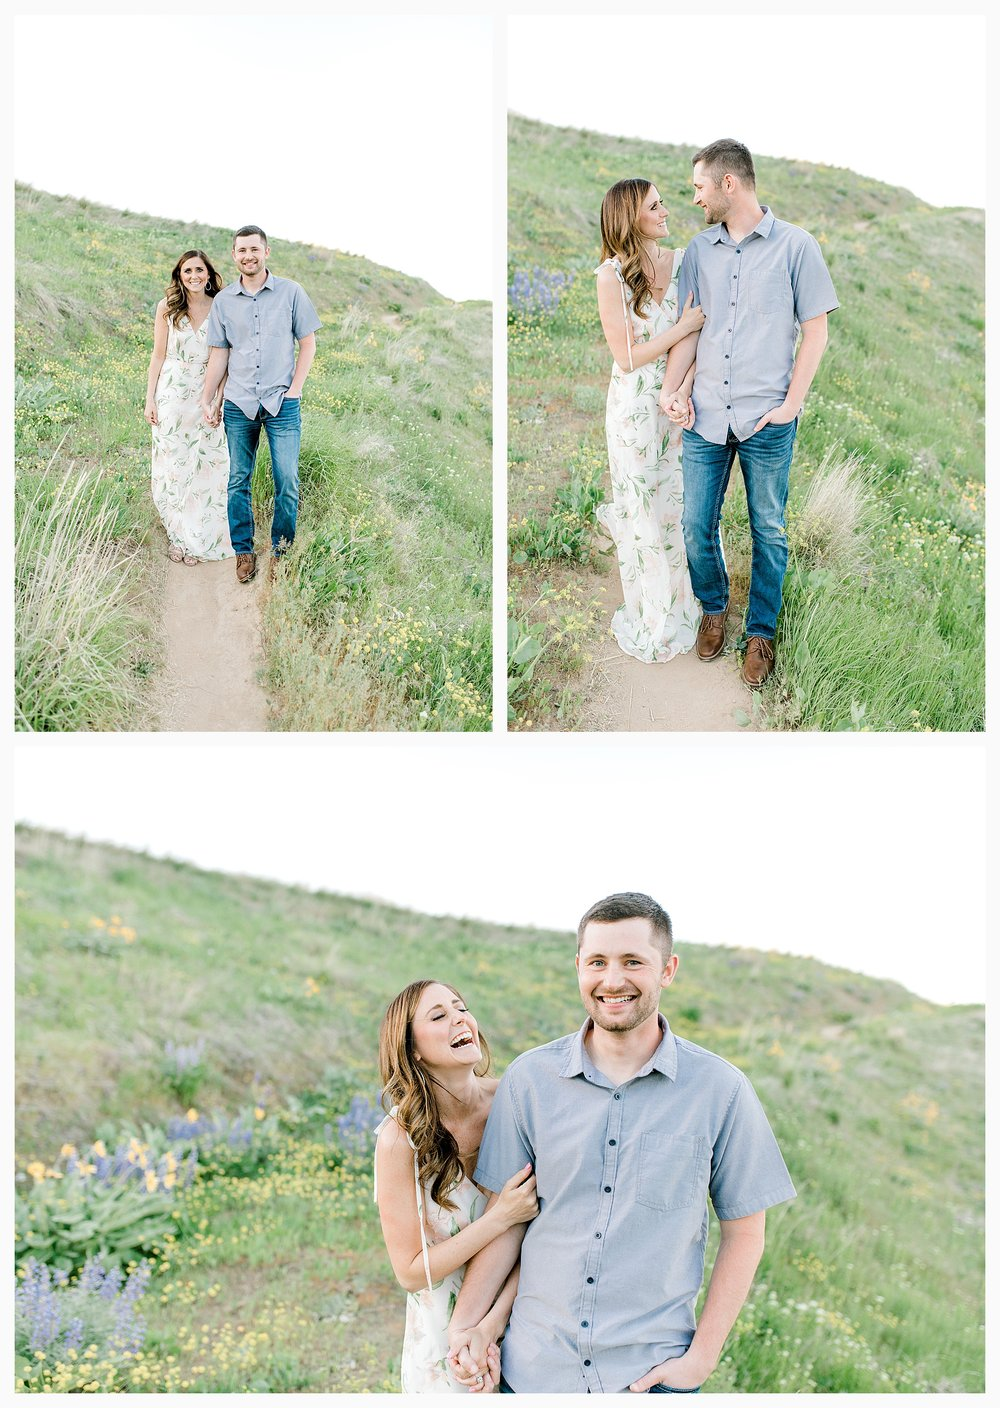 Engagement session amongst the wildflowers in Wenatchee, Washington | Engagement Session Outfit Inspiration for Wedding Photography with Emma Rose Company | Light and Airy PNW Photographer, Seattle Bride_0001.jpg